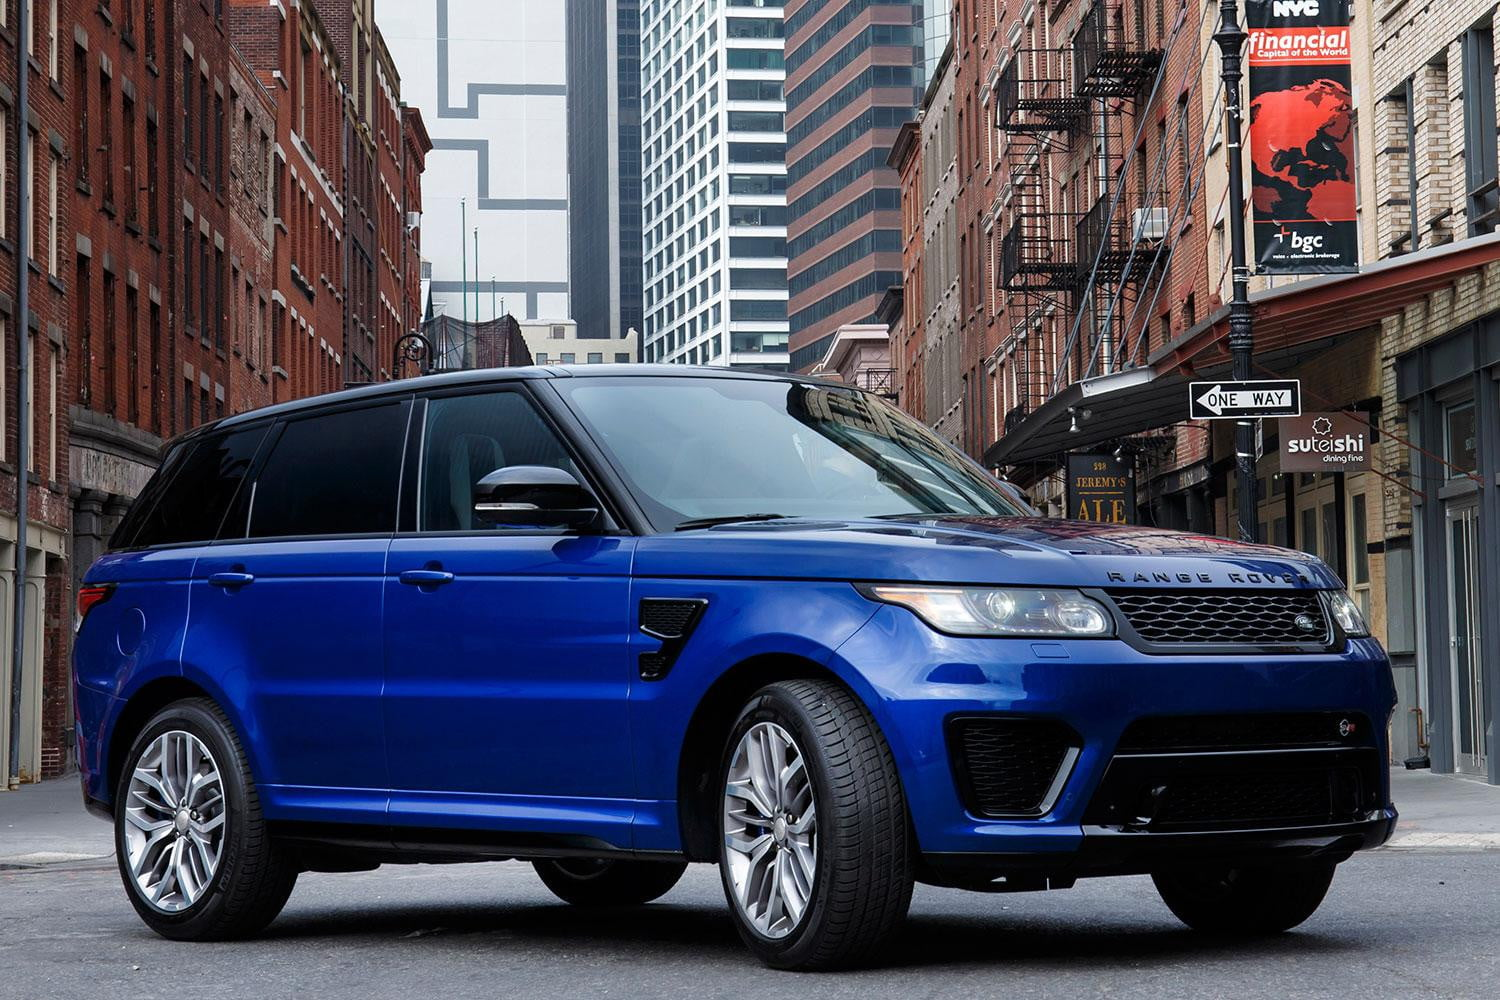 2016 land rover range rover sport svr first drive review digital trends. Black Bedroom Furniture Sets. Home Design Ideas